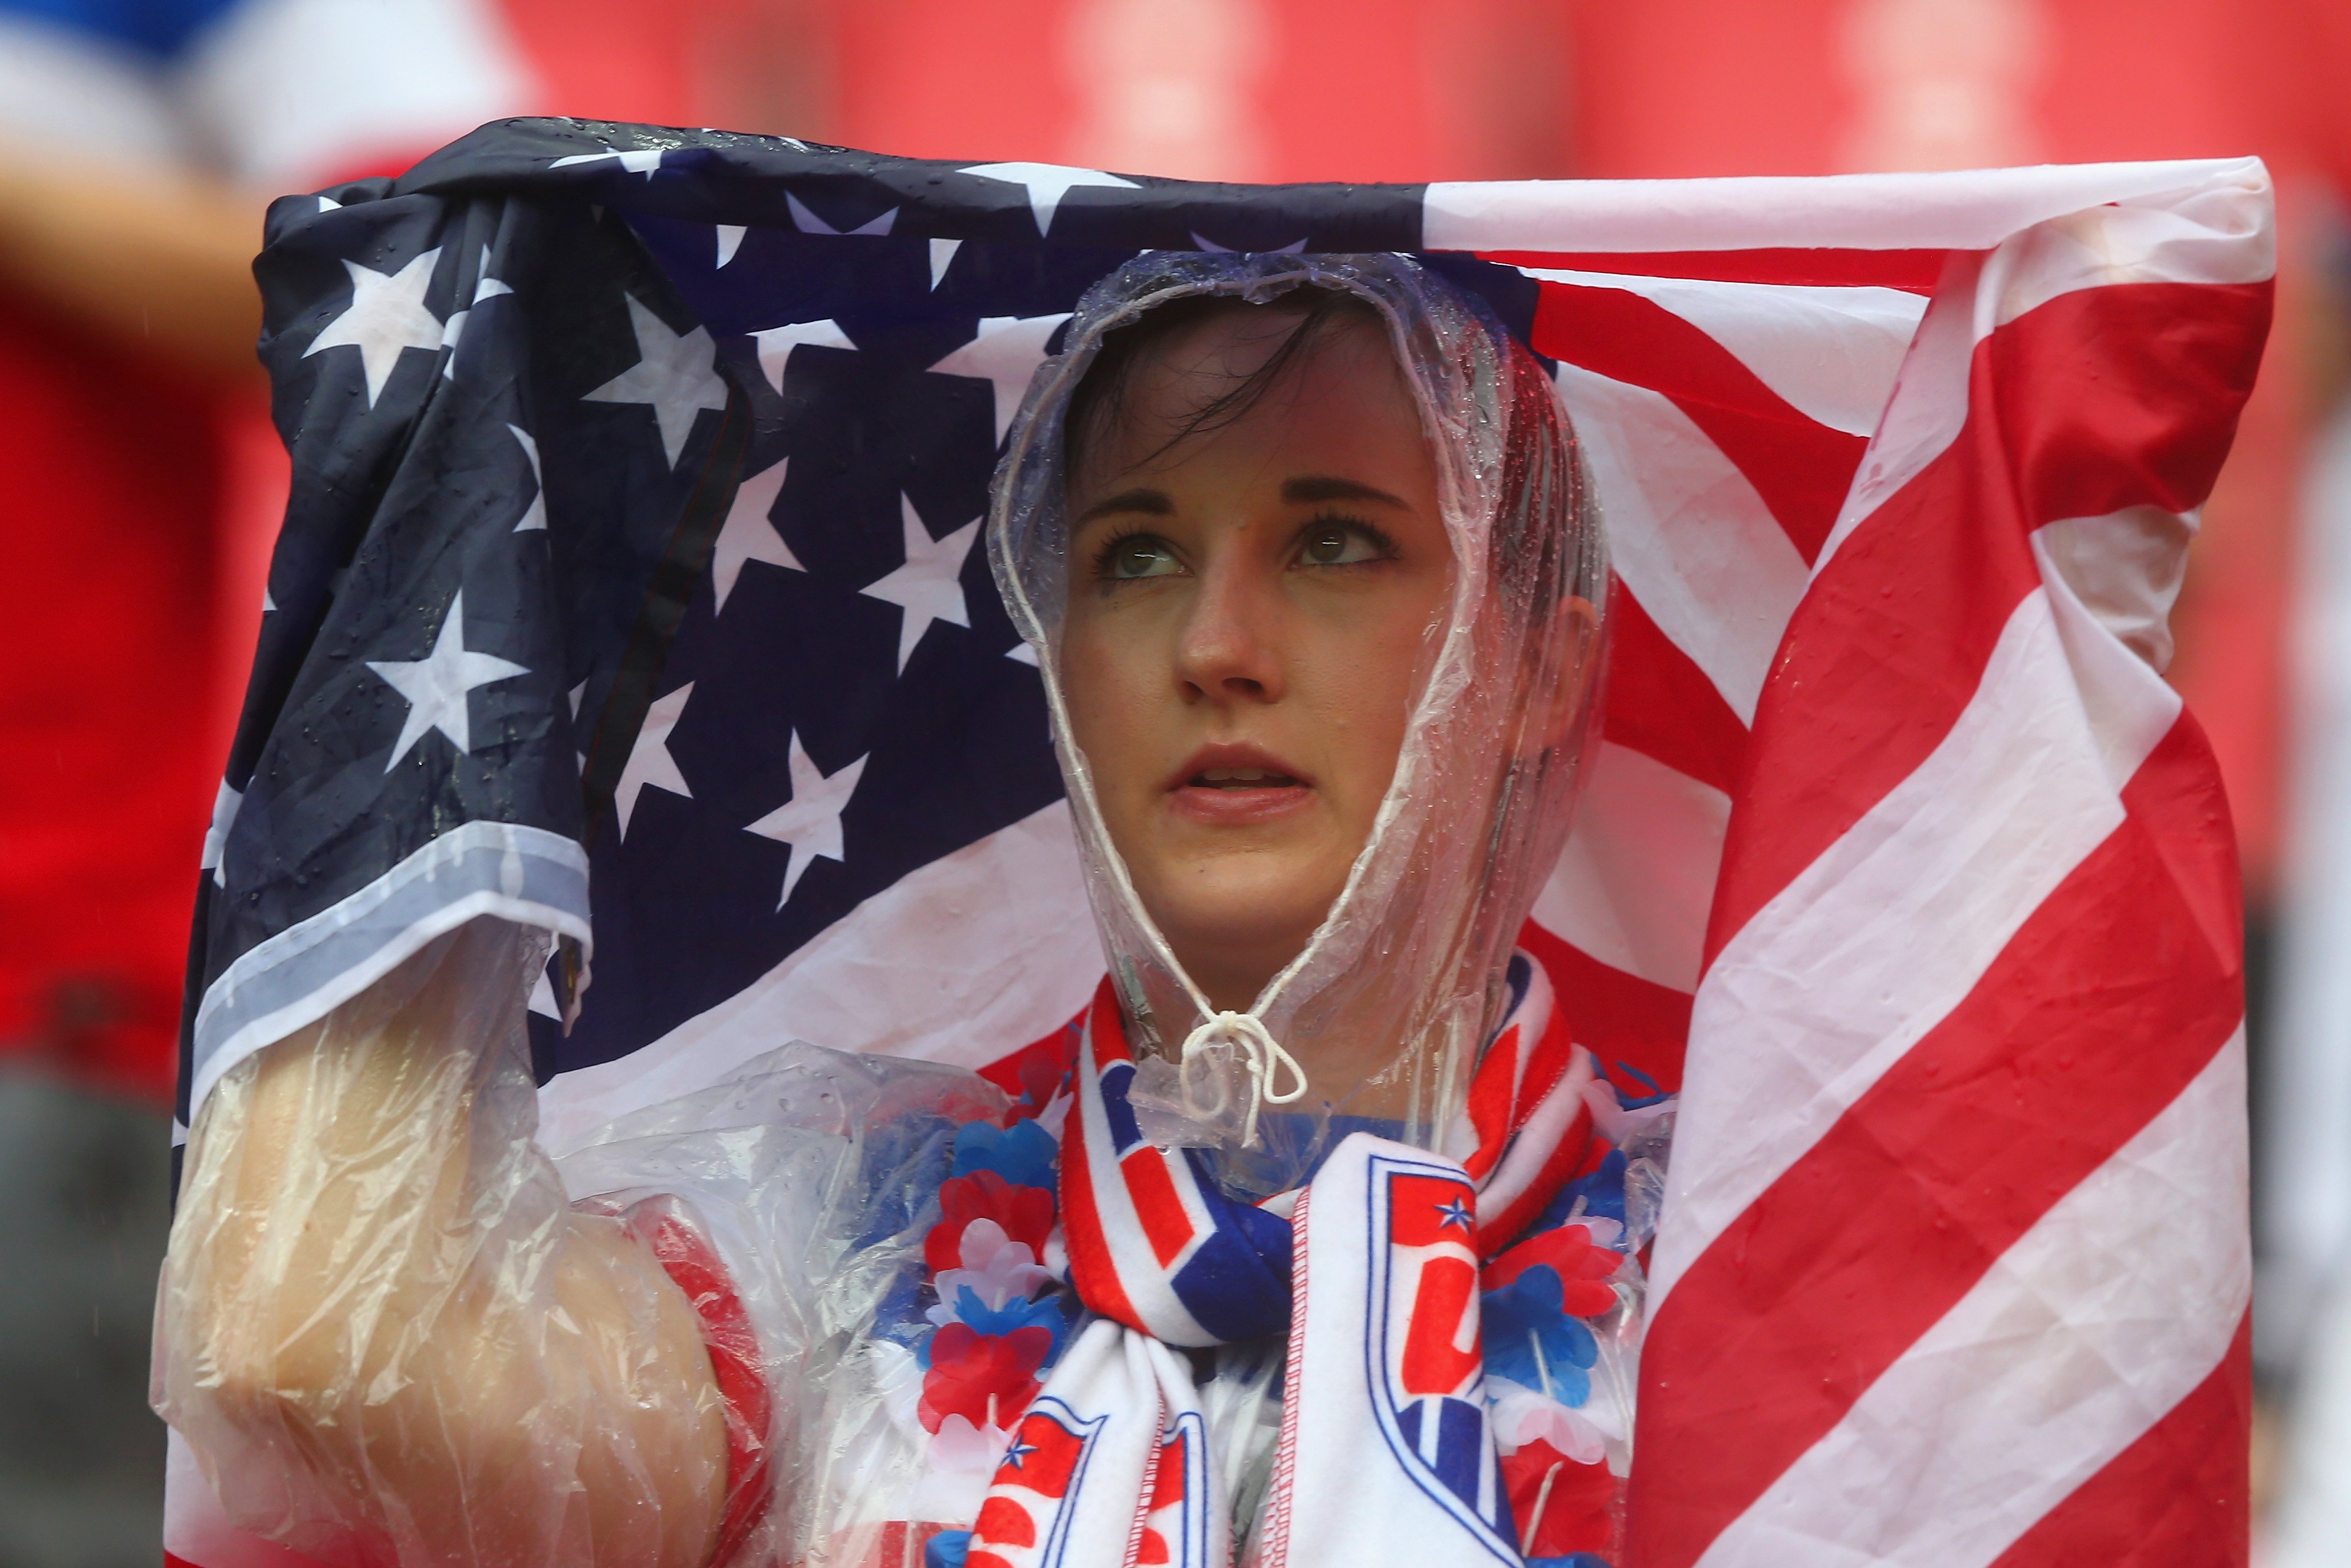 An United States fan looks on in the rain prior to the 2014 FIFA World Cup Brazil group G match between the United States and Germany at Arena Pernambuco on June 26, 2014 in Recife, Brazil.